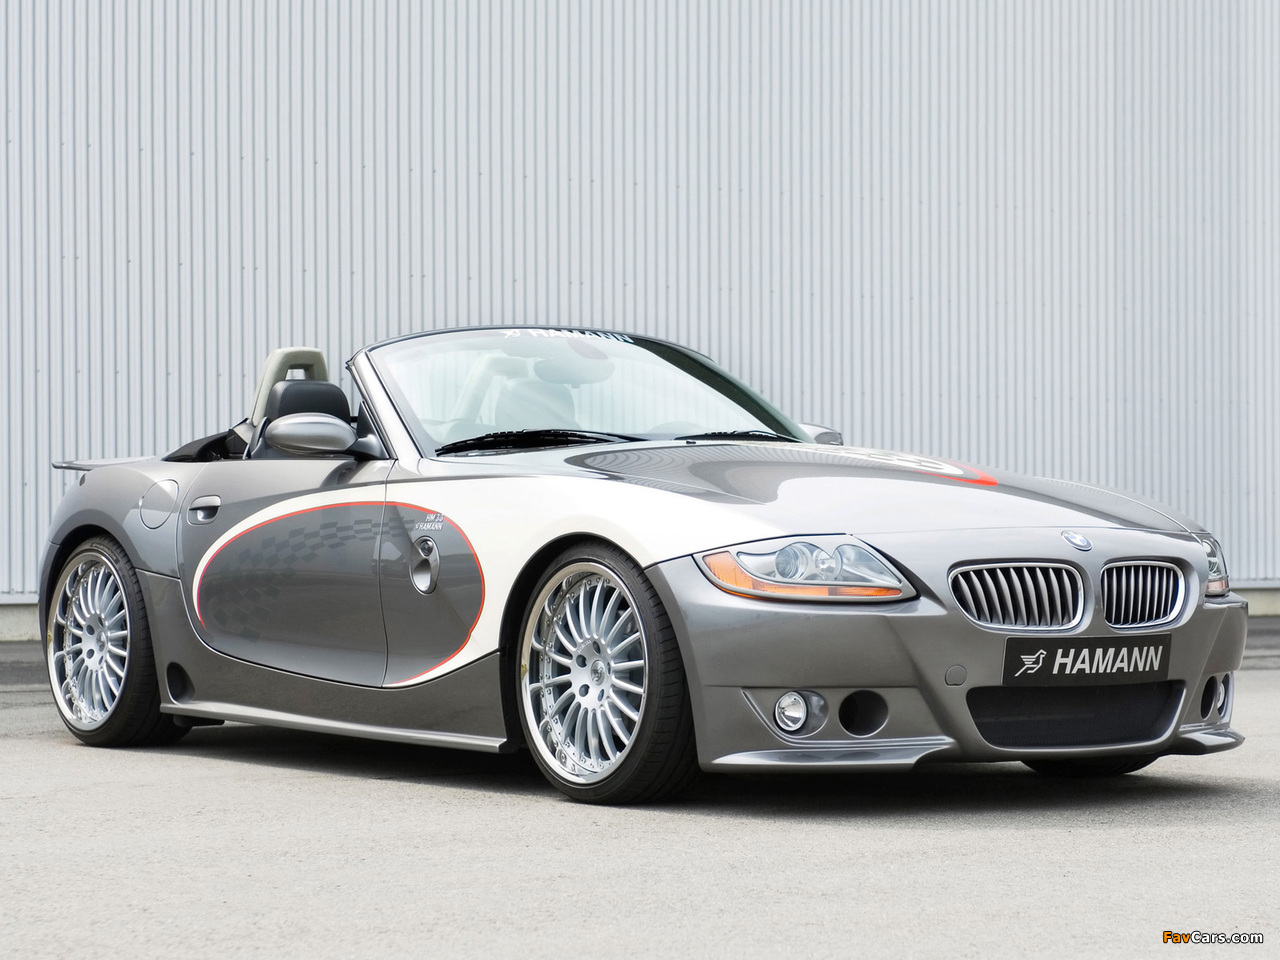 Hamann Bmw Z4 Roadster E85 Images 1280x960